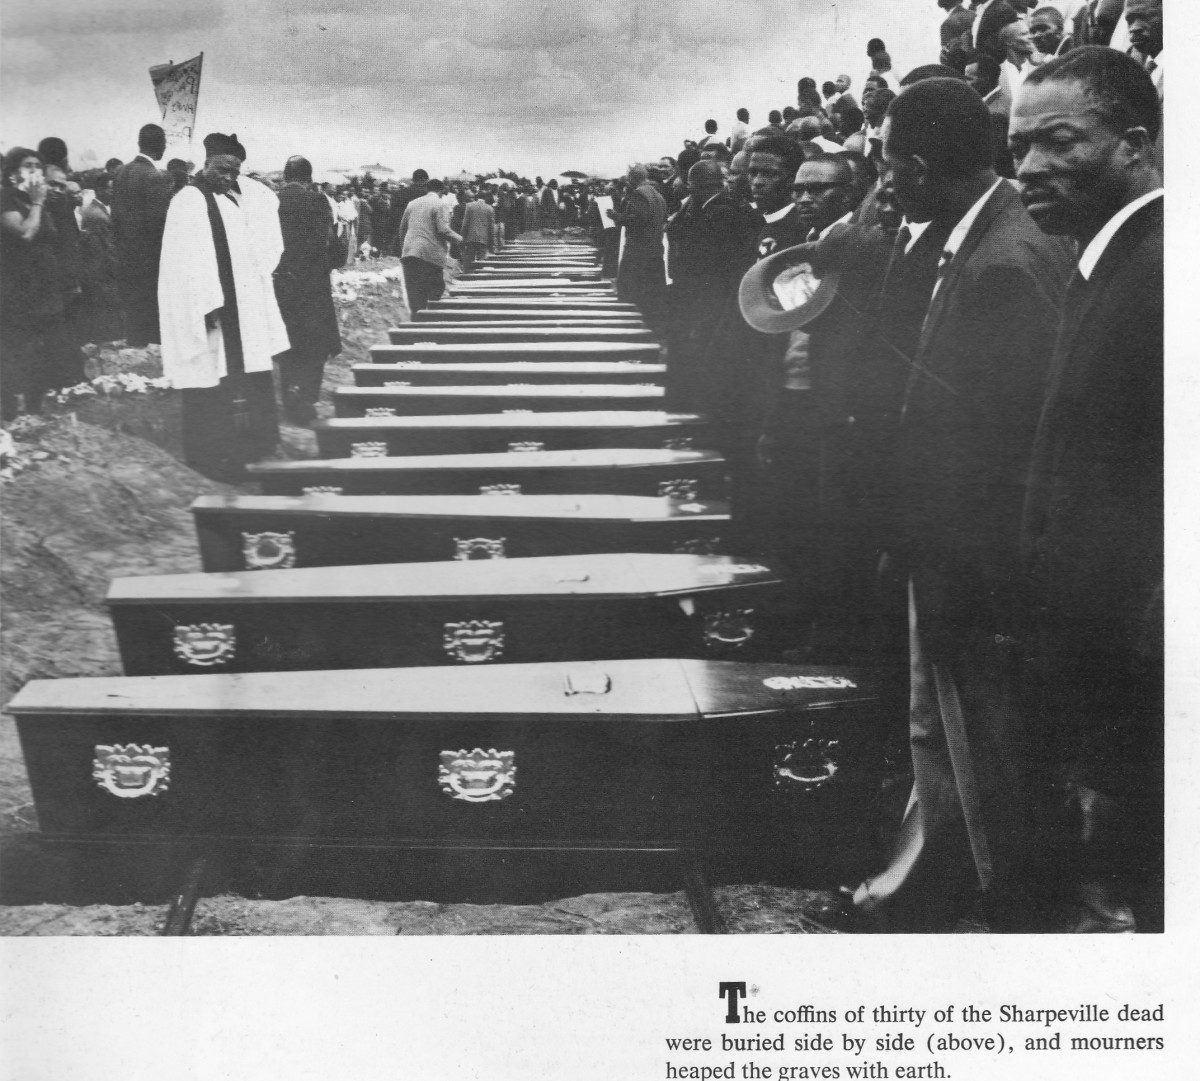 Burial of the Sharpeville shooting victims, most of whom were shot in the back when running away from the rampaging police